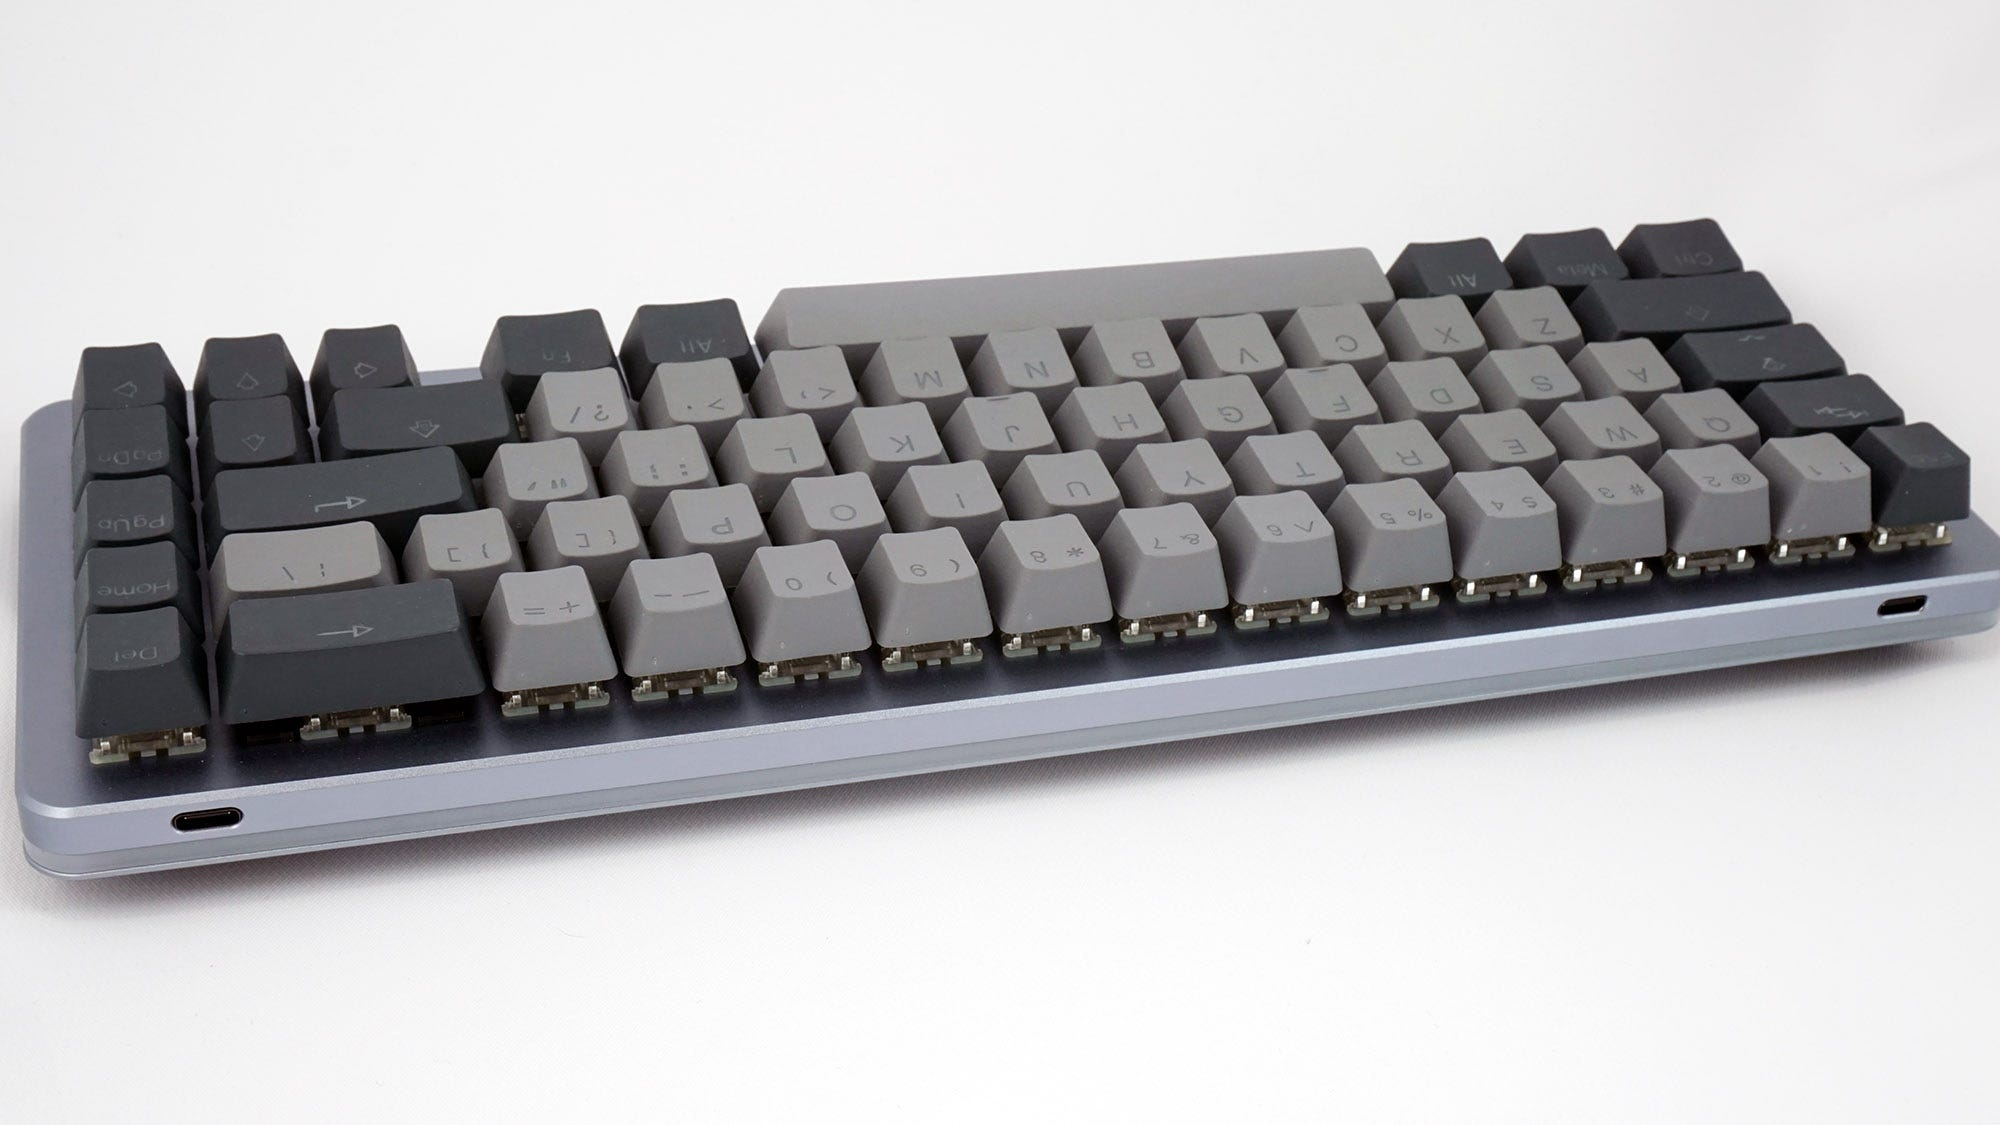 The ALT keyboard (with light strip turned off).